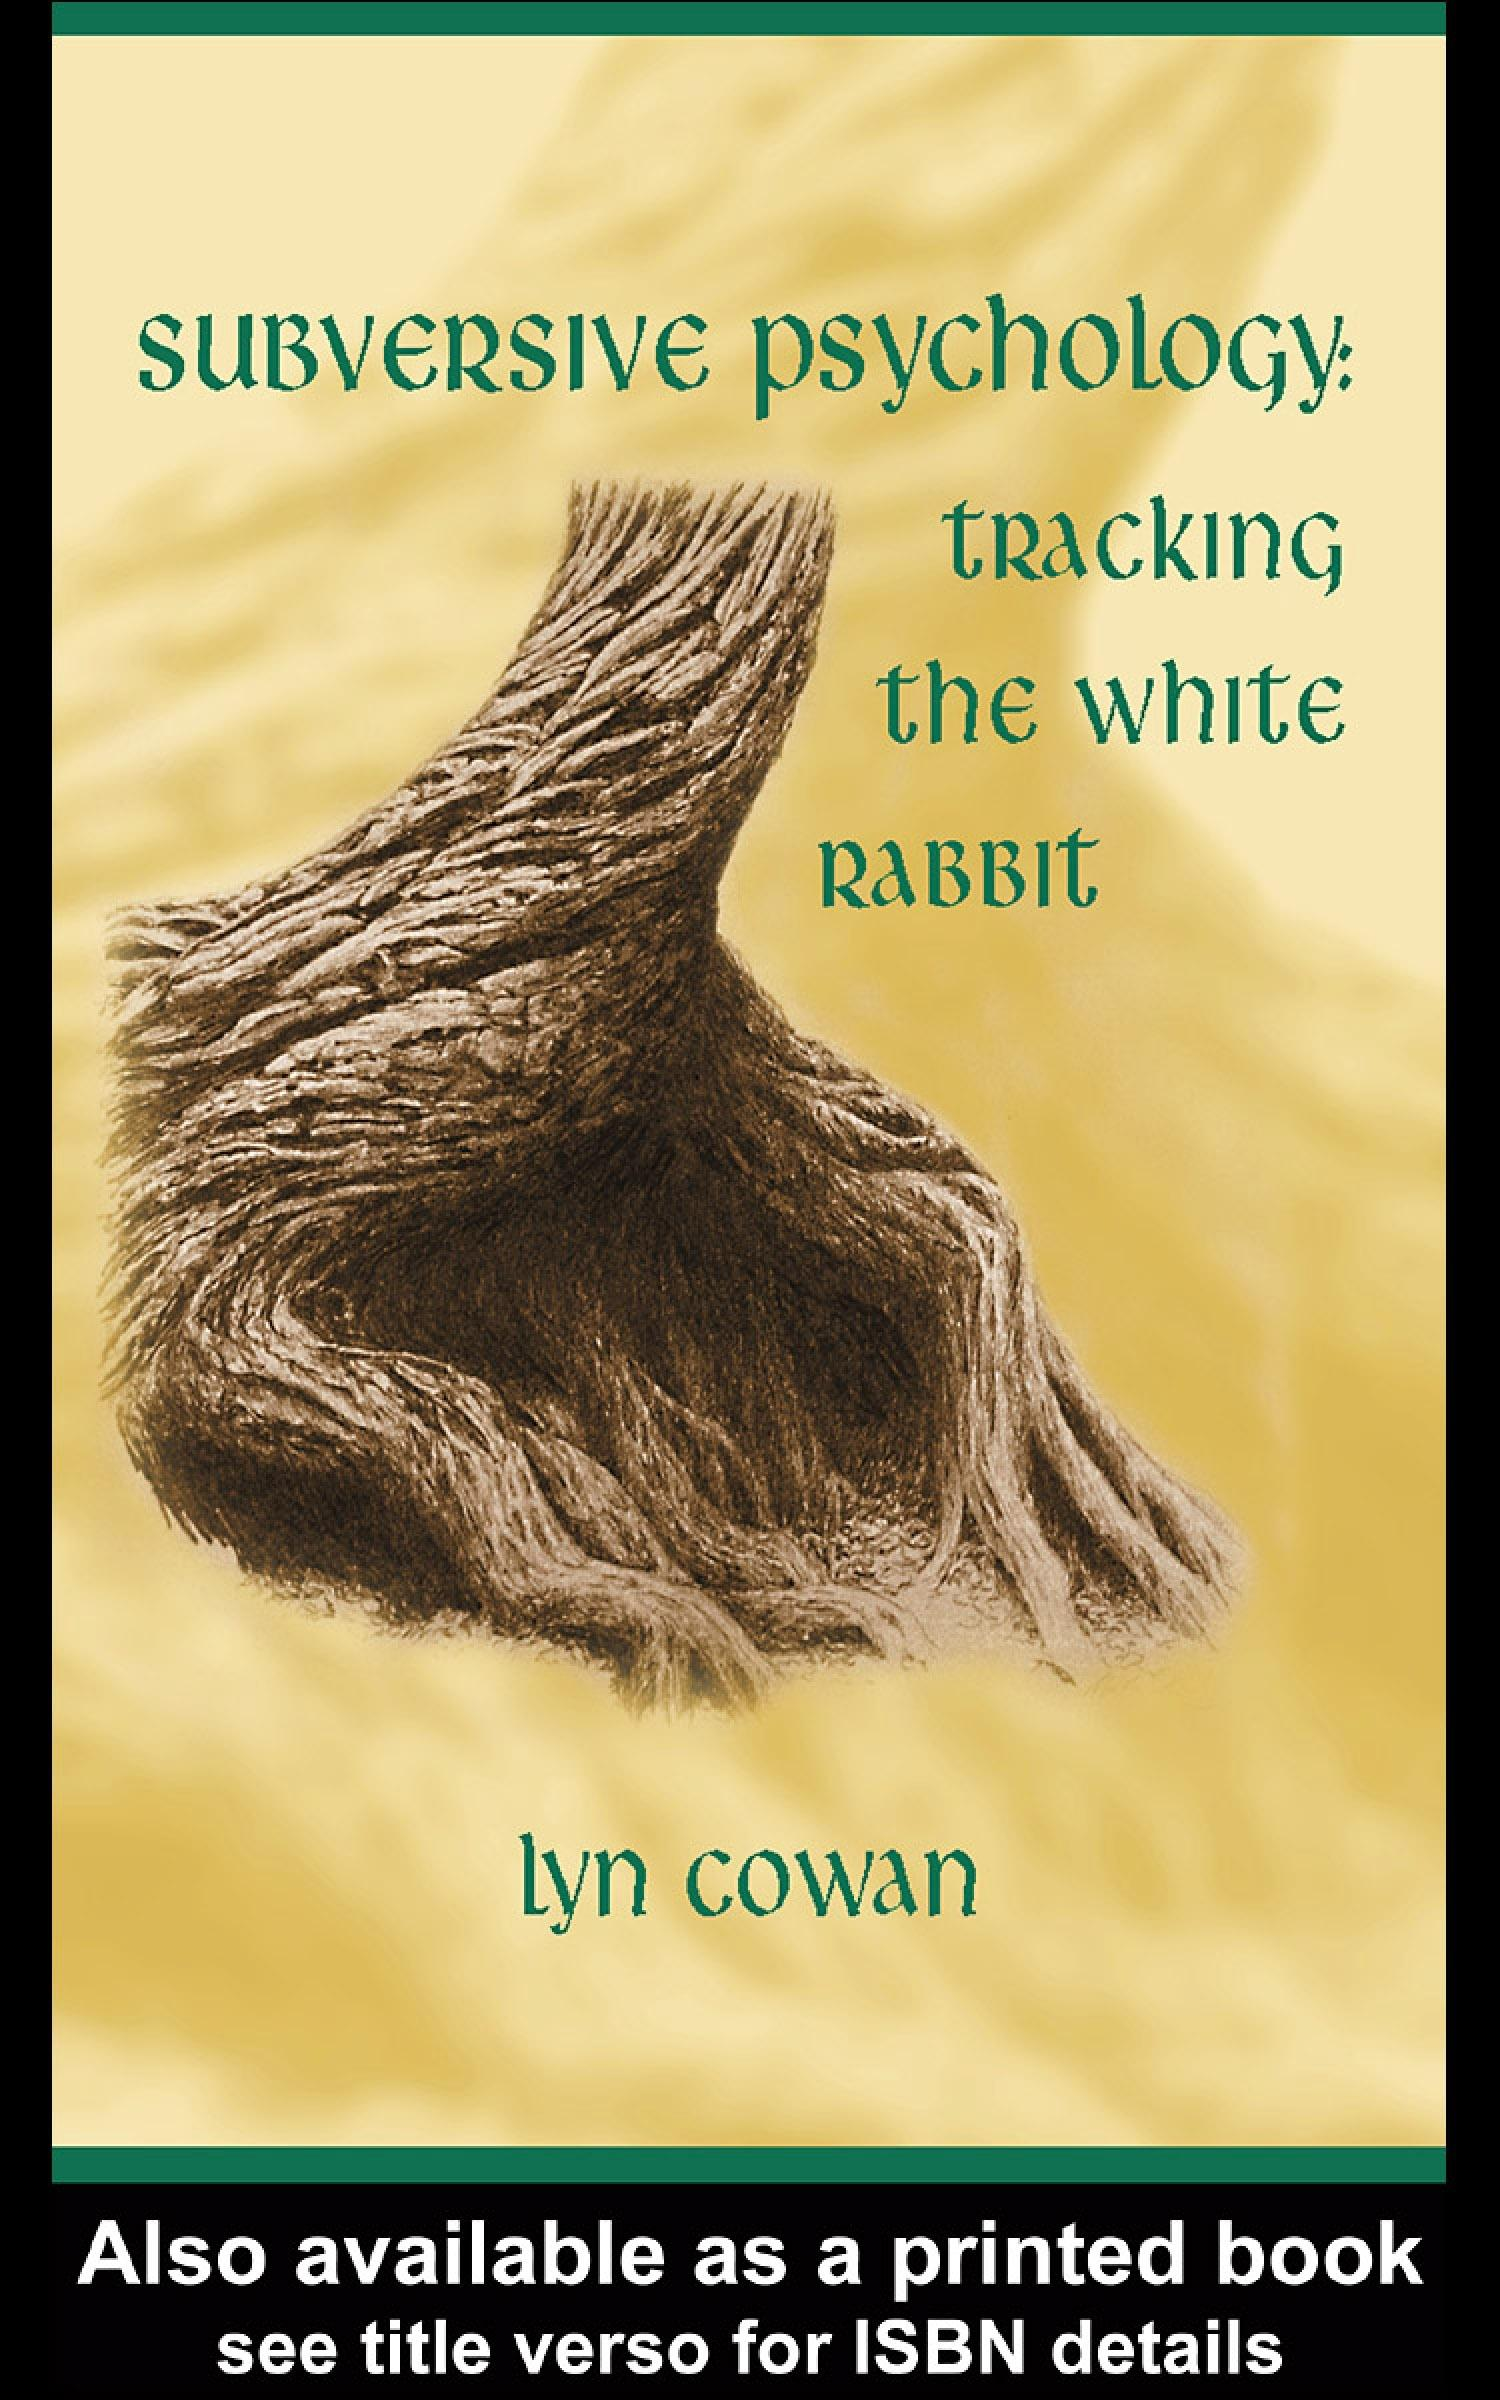 Tracking the White Rabbit: A Subversive View of Modern Culture EB9780203989340